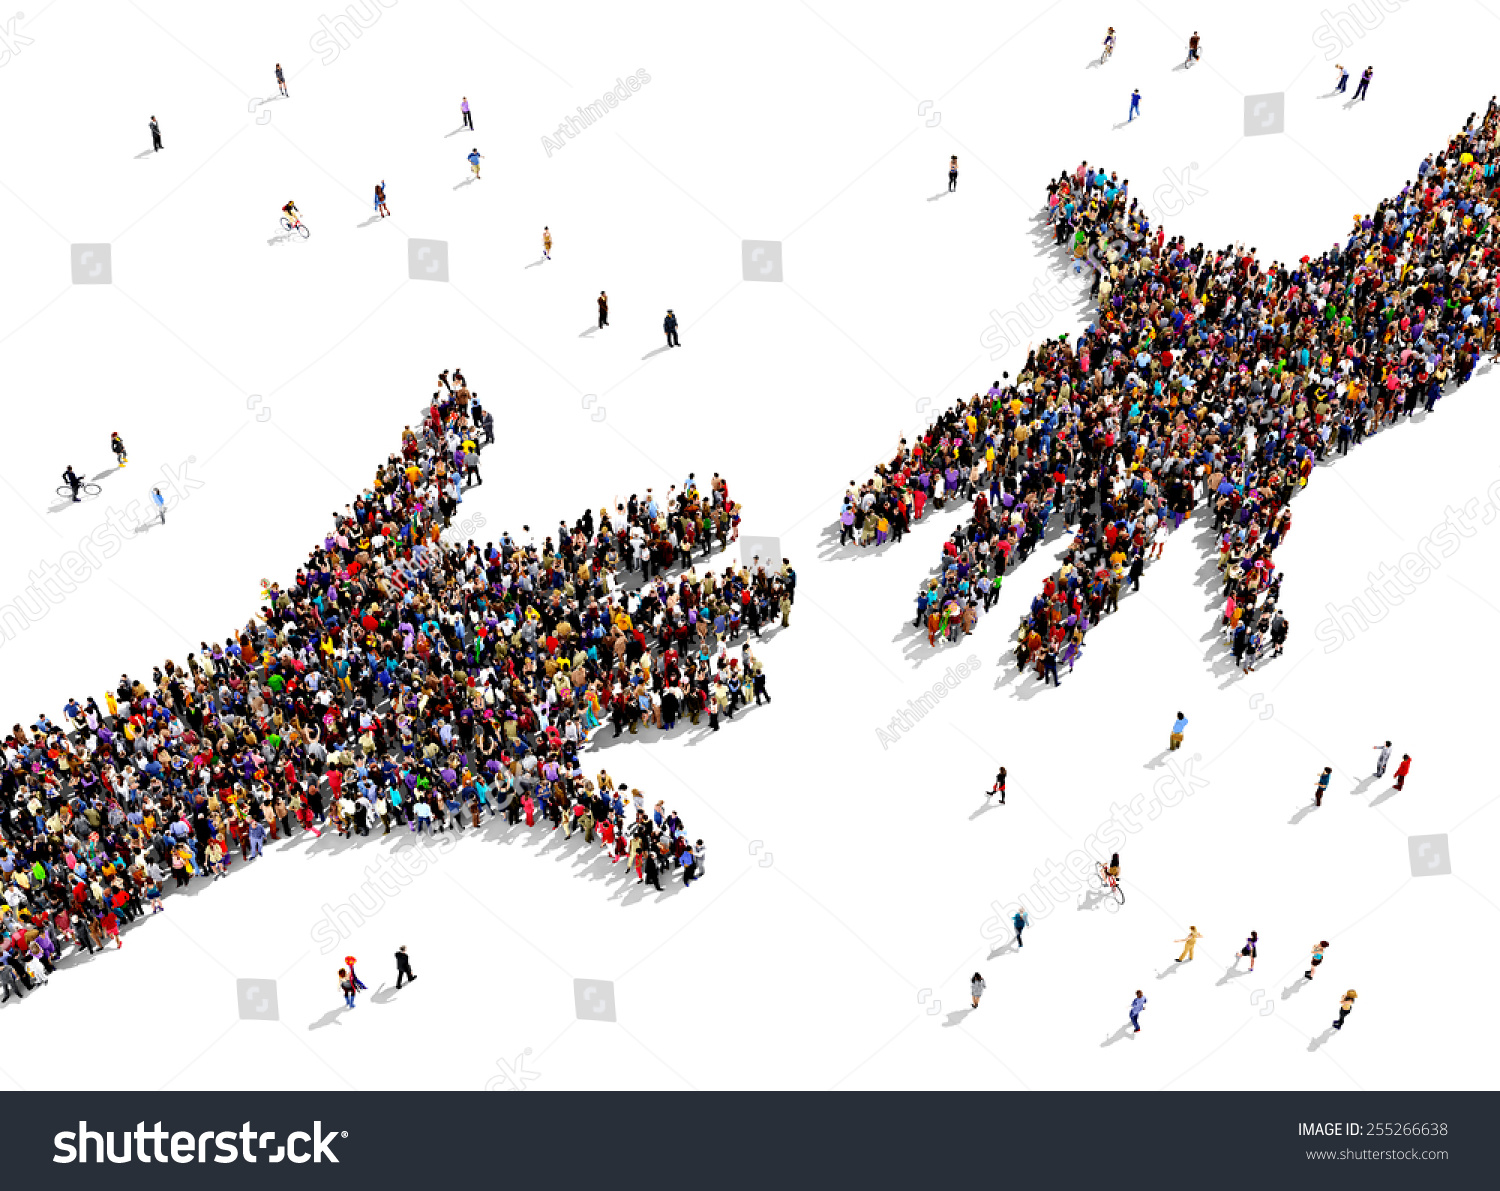 stock-photo-large-group-of-people-seen-f